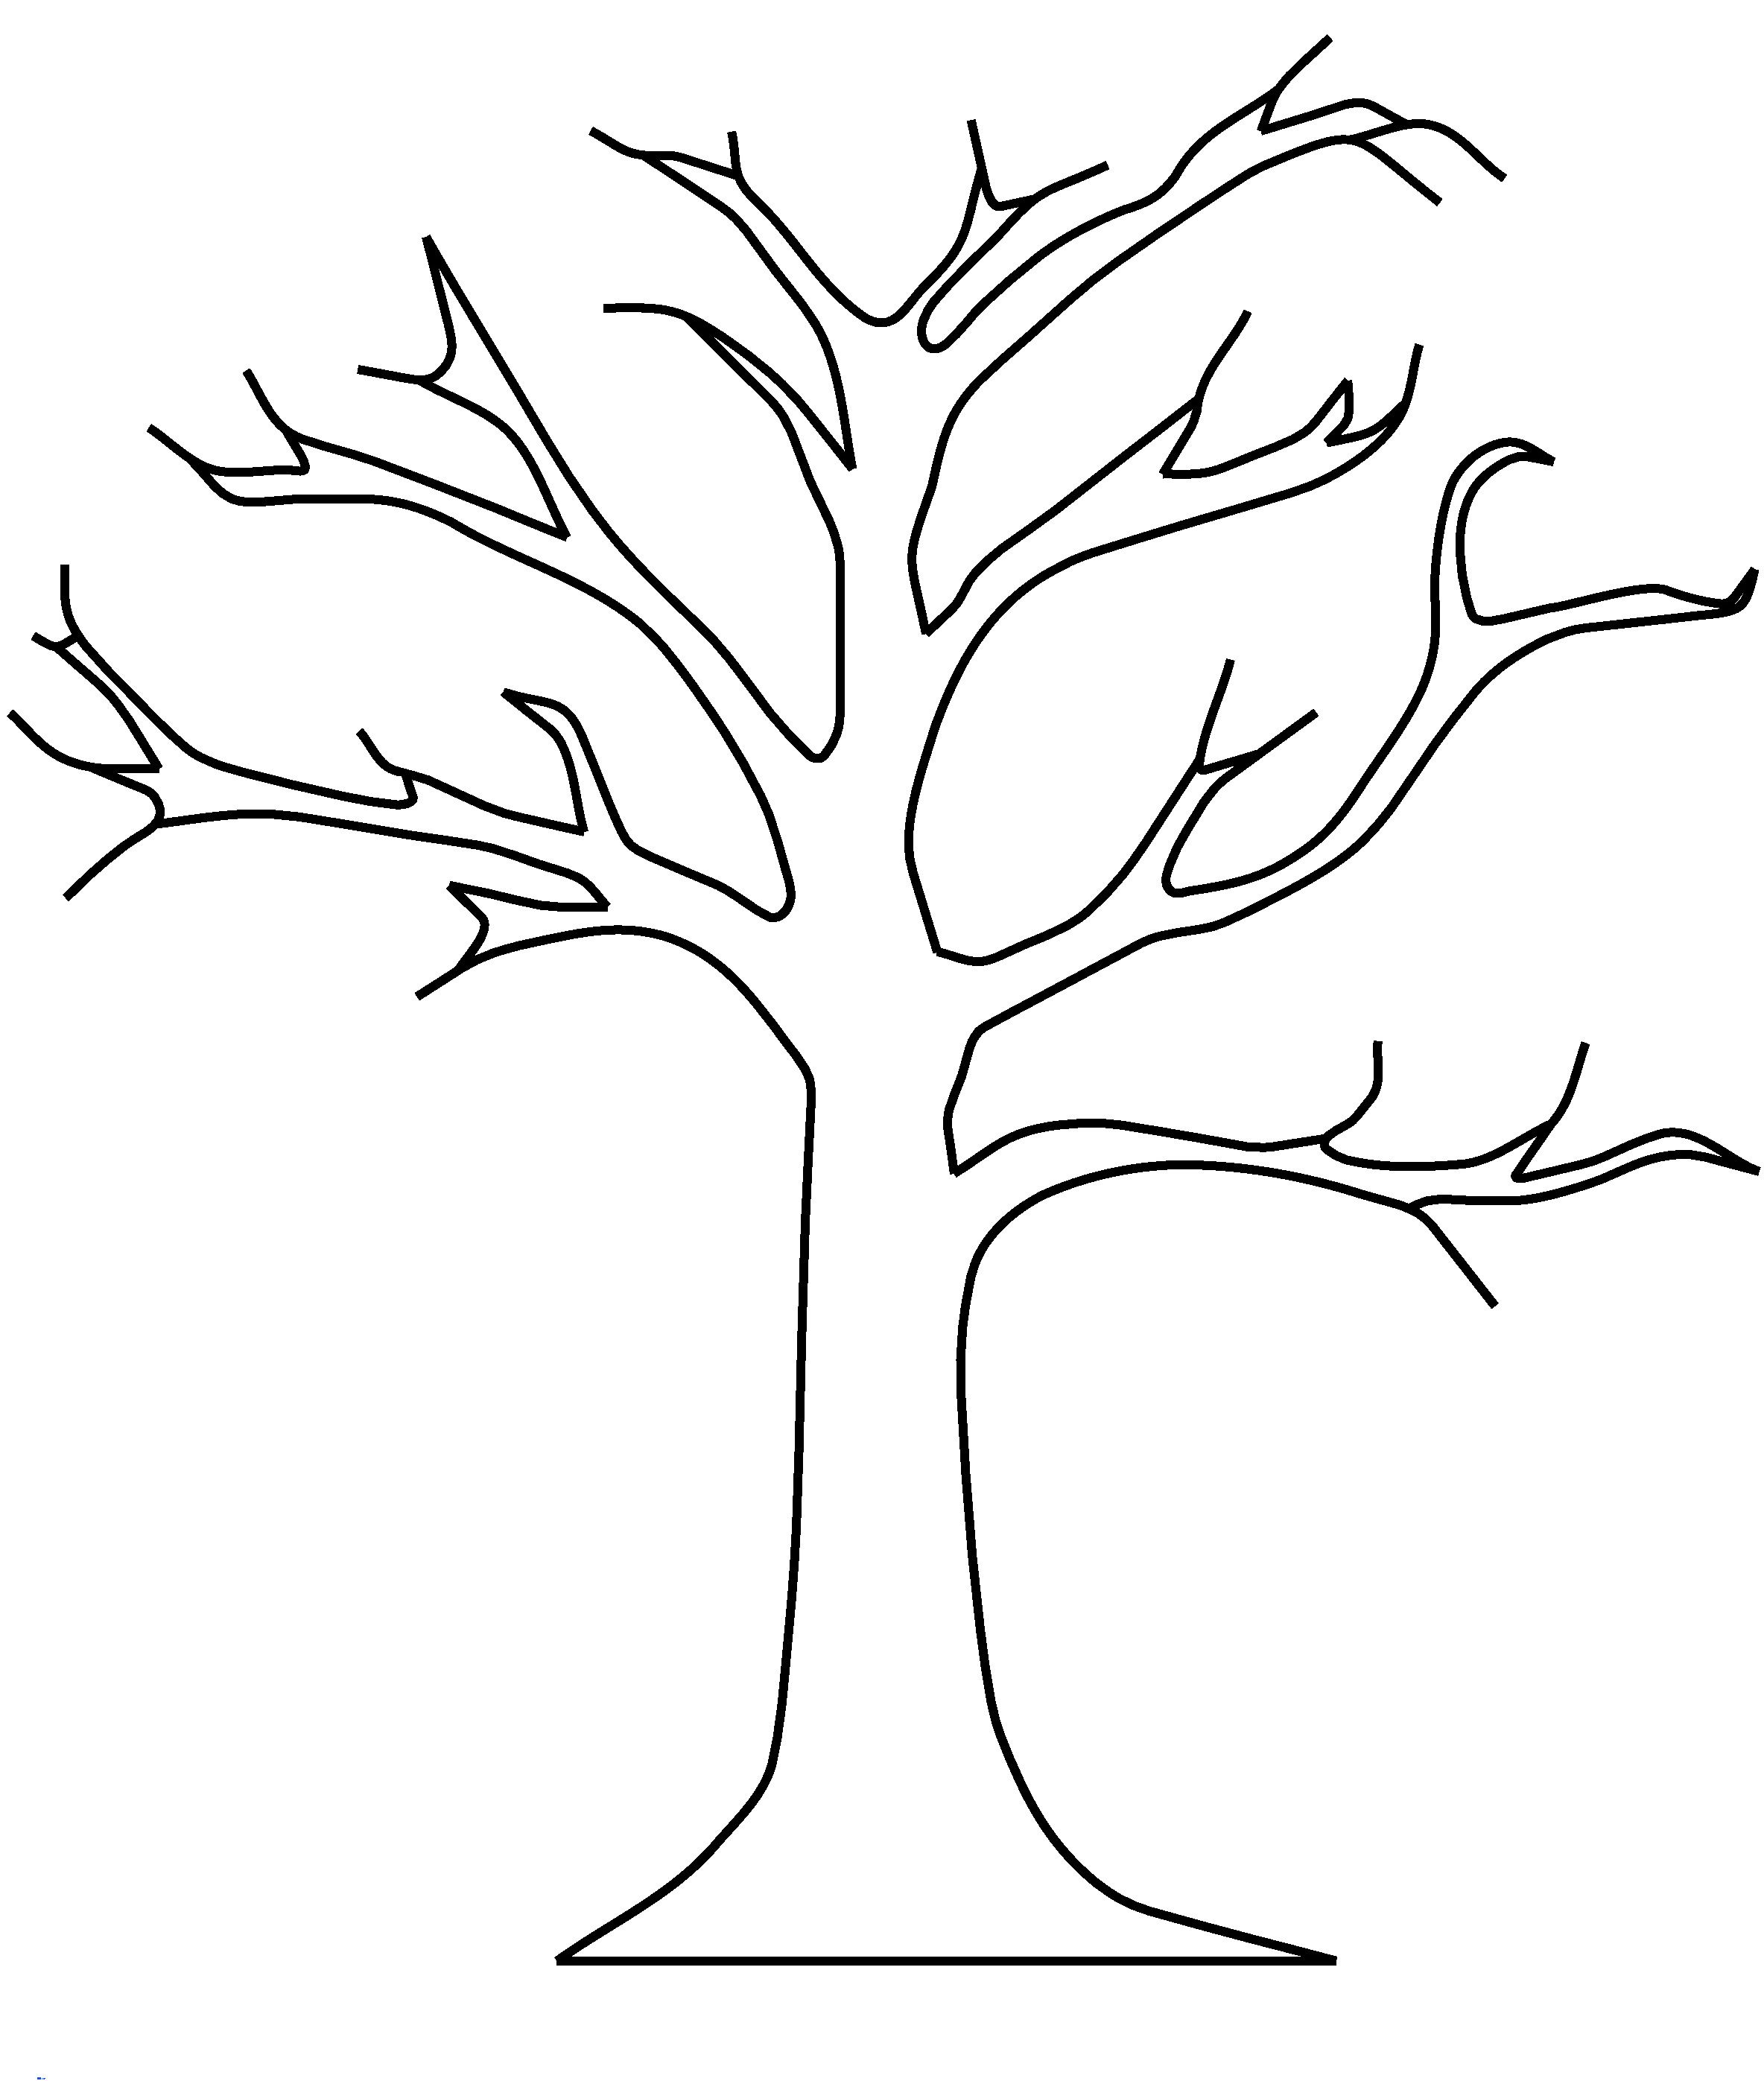 Apple Tree Template.dgn: Apple Tree Without Leaves Coloring.